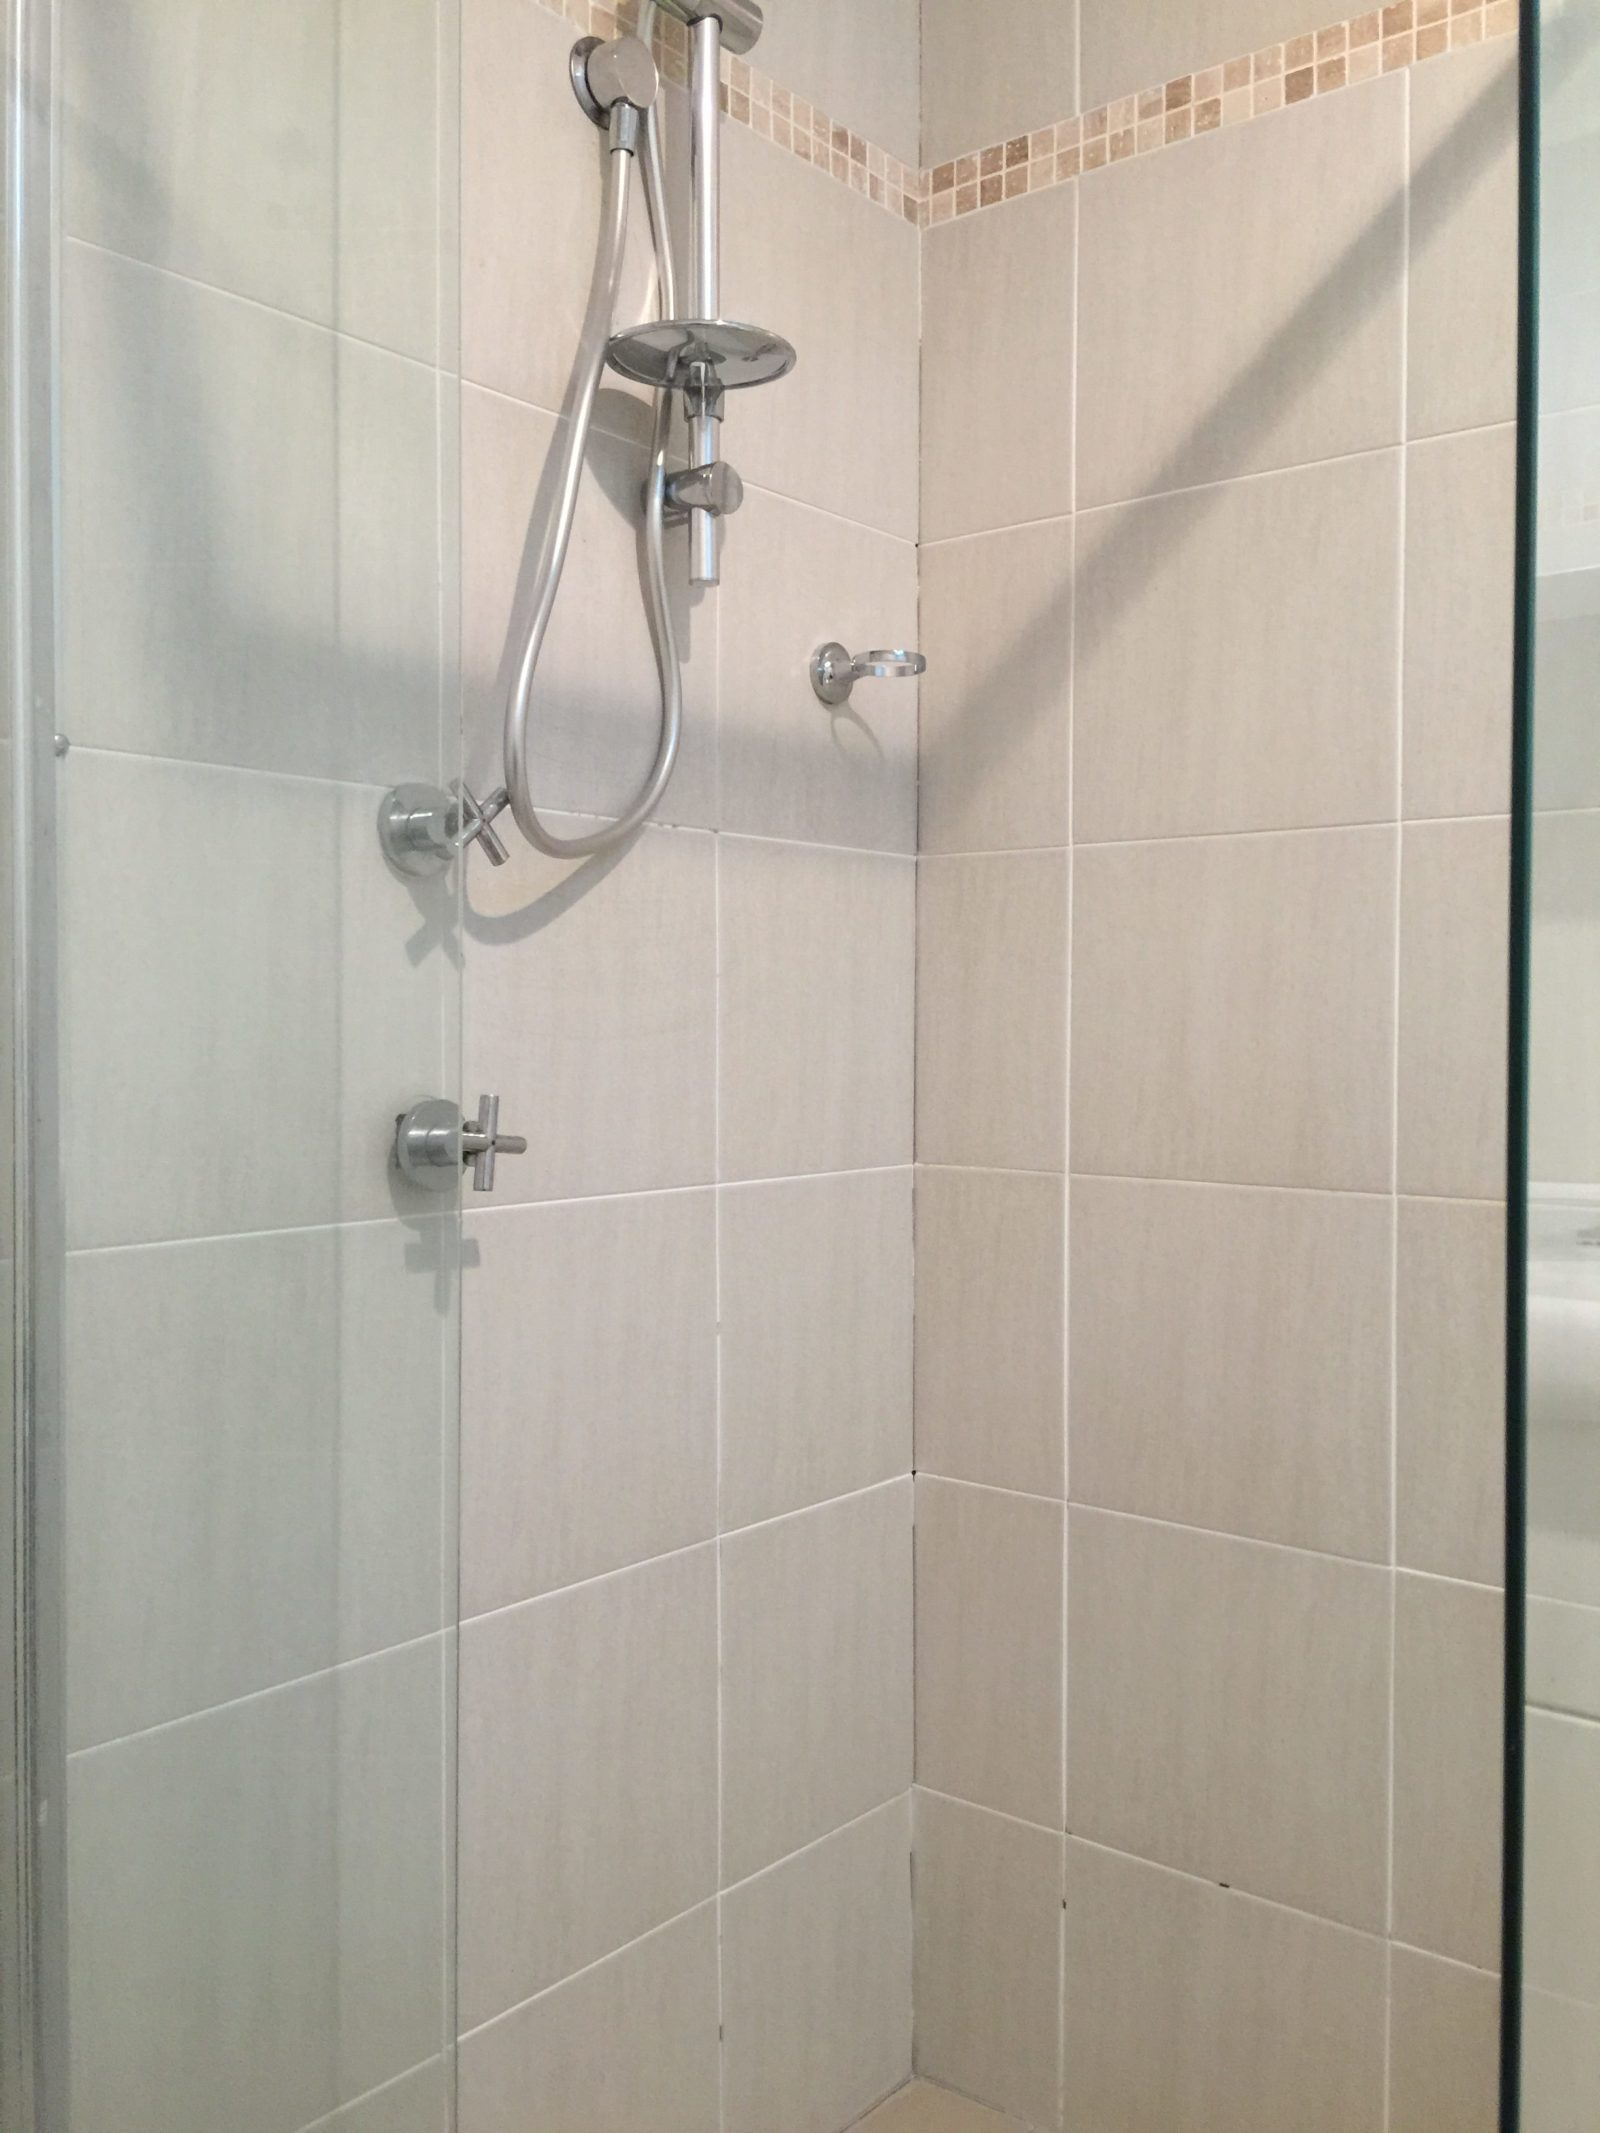 shower with missing wall grout and floor grout causing shower leaks